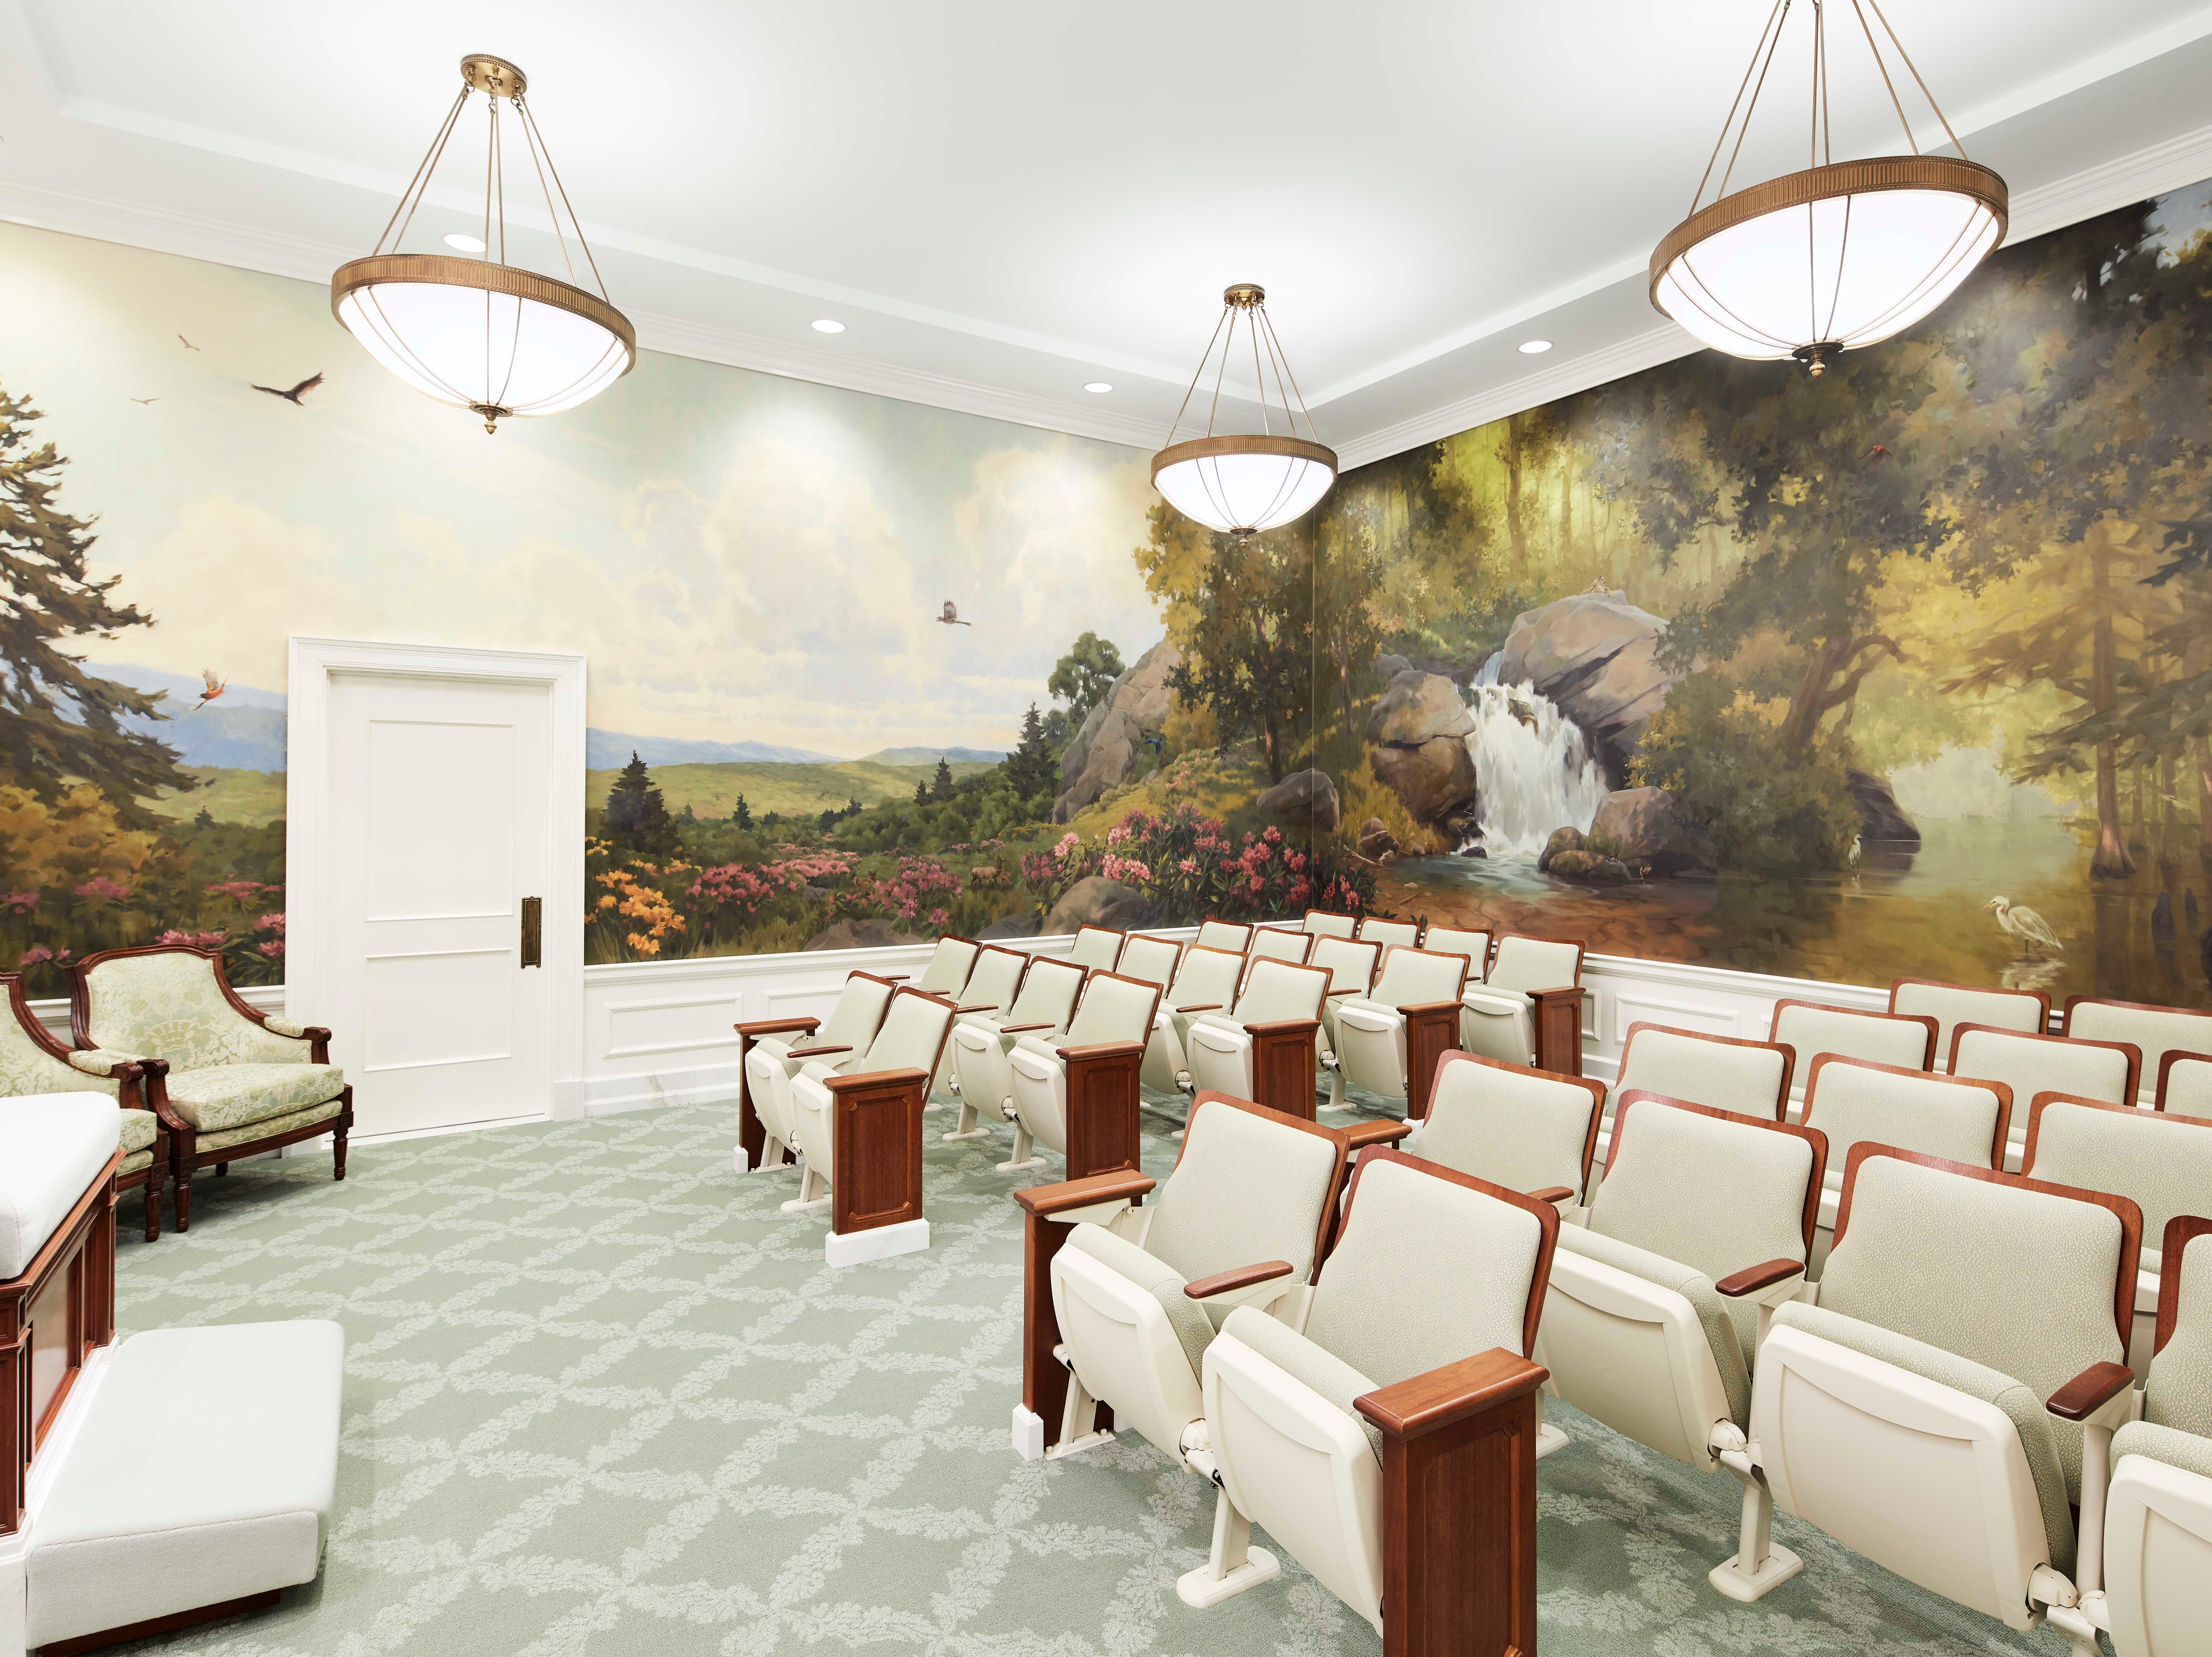 An instruction room in the newly renovated Memphis Tennessee Temple has an altar in the front. Around the walls is a mural featuring a landscape painting.